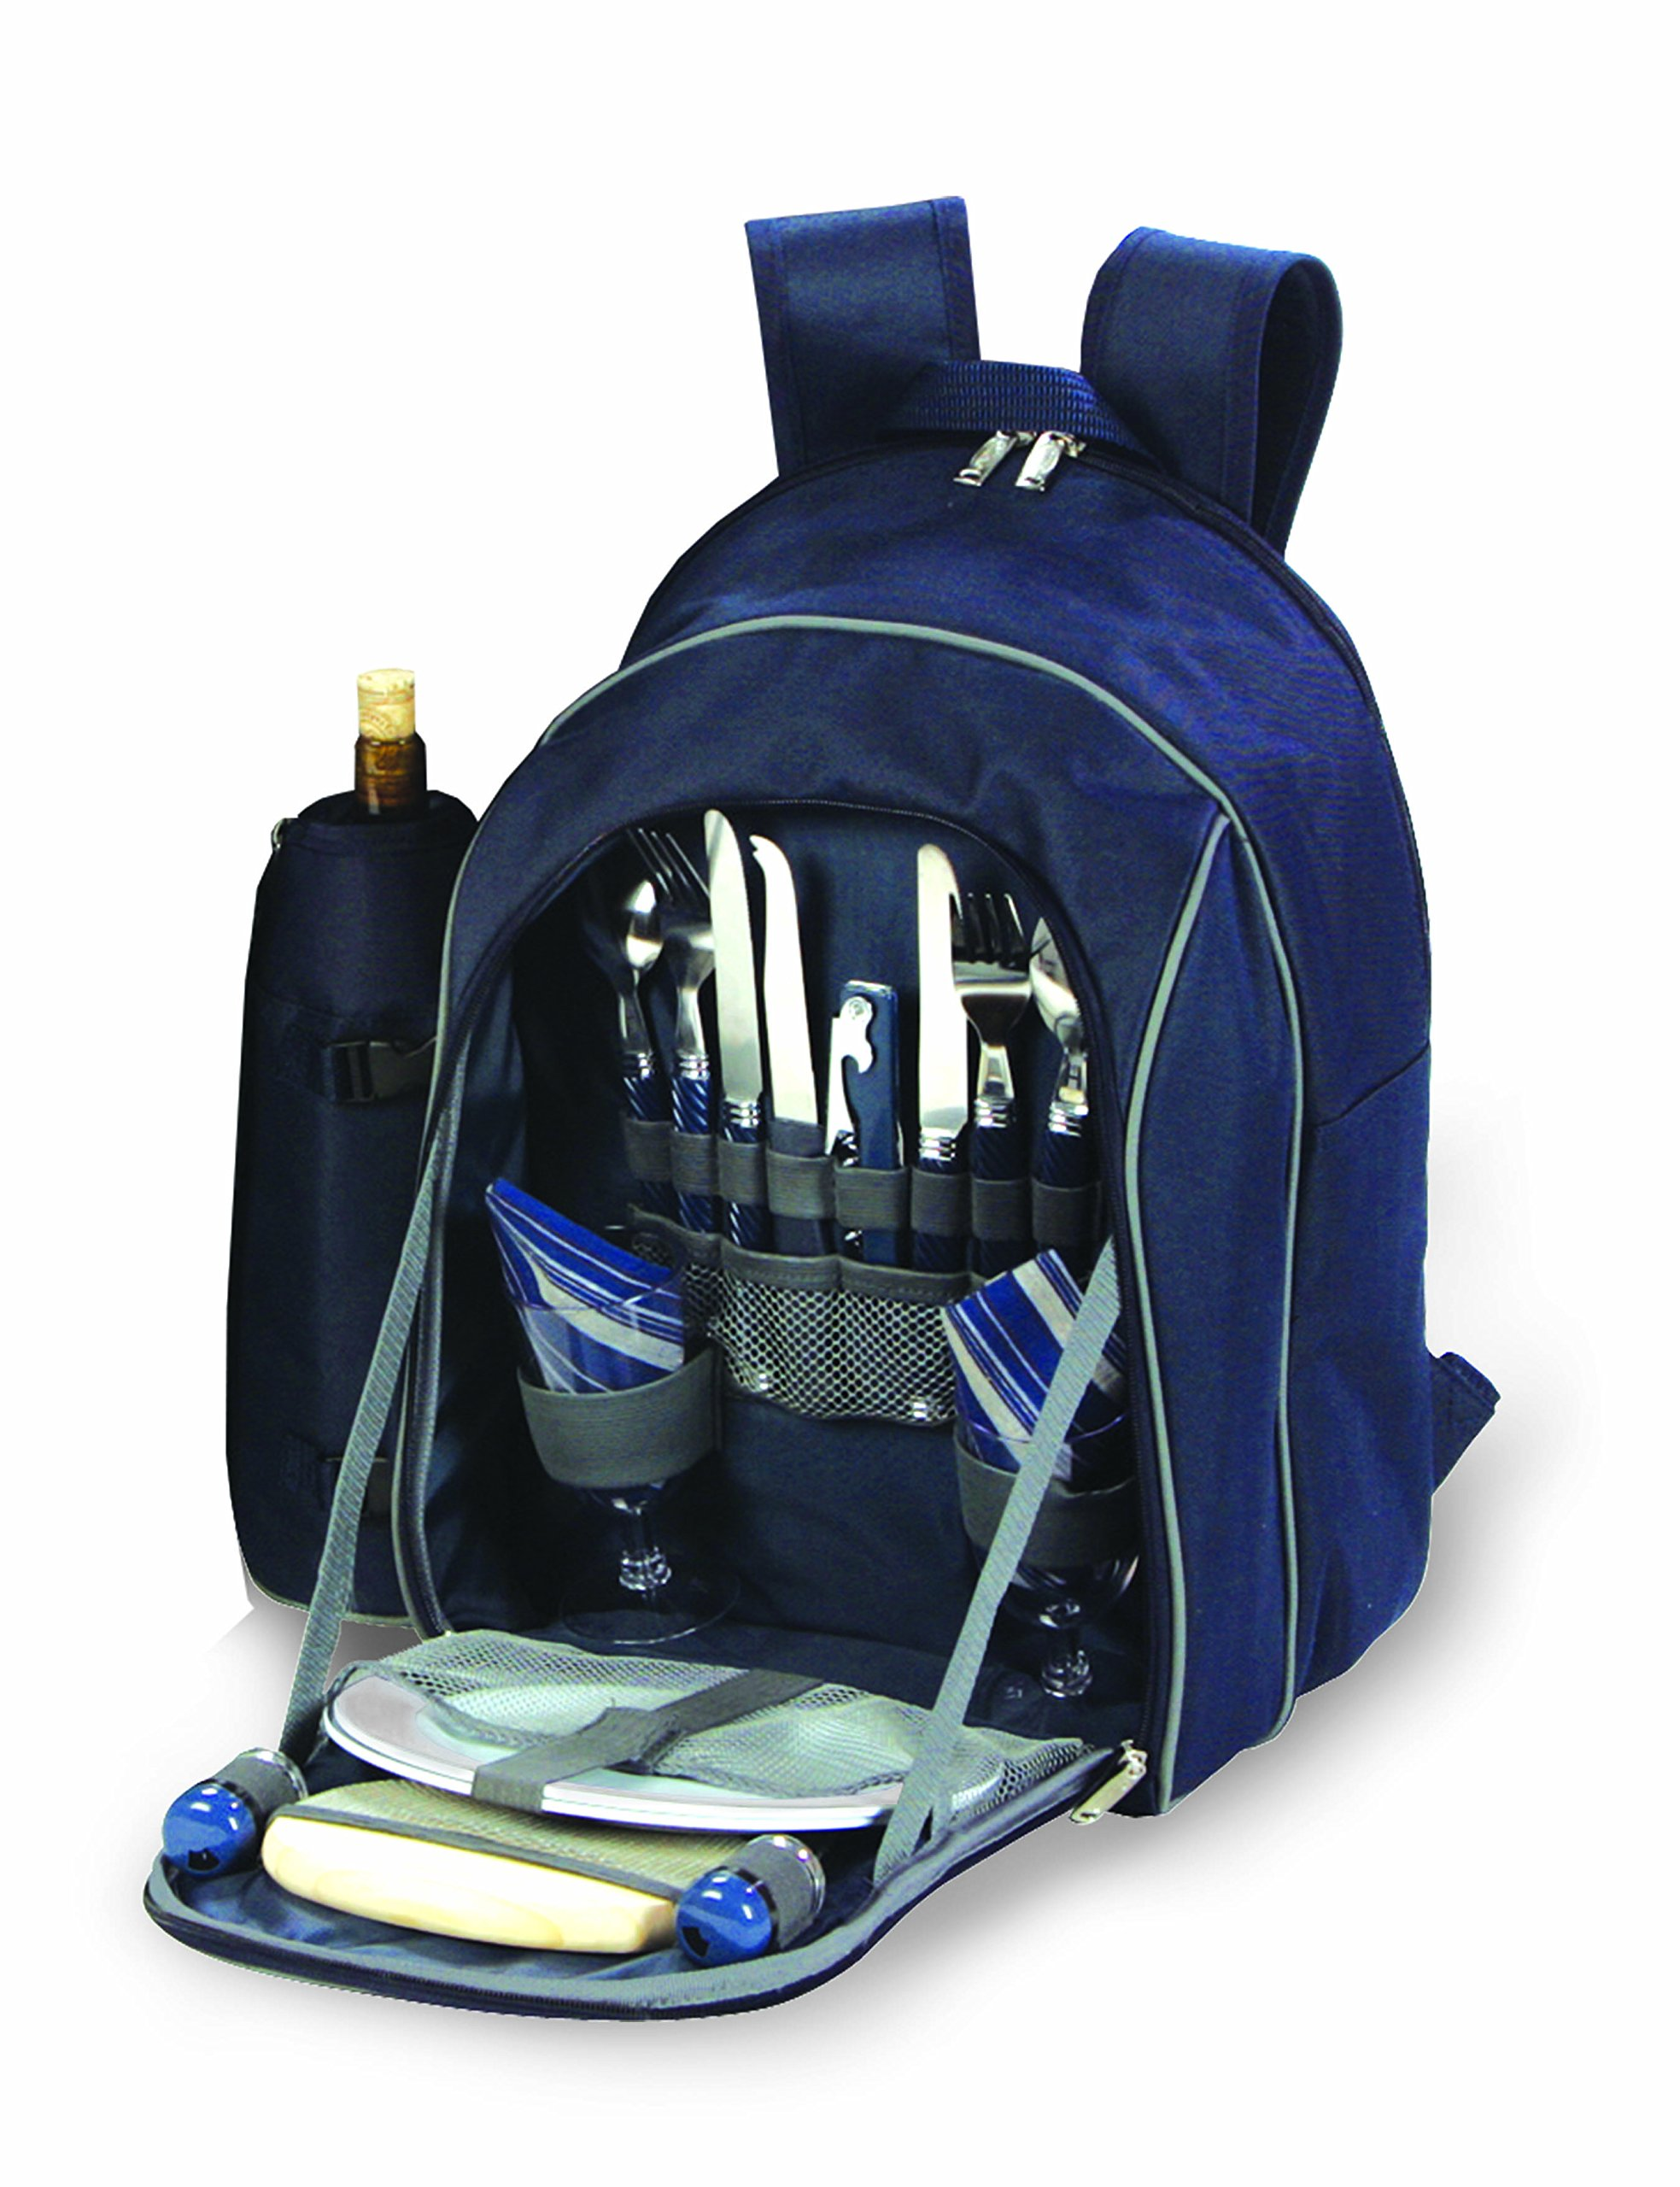 Picnic Plus Picnic Backpack for 2 - Complete Set includes Premium Stainless Steel Tableware, Cheese Board, Wine Opener, Insulated Food & Wine Cooler Bag, Total 17 components - by